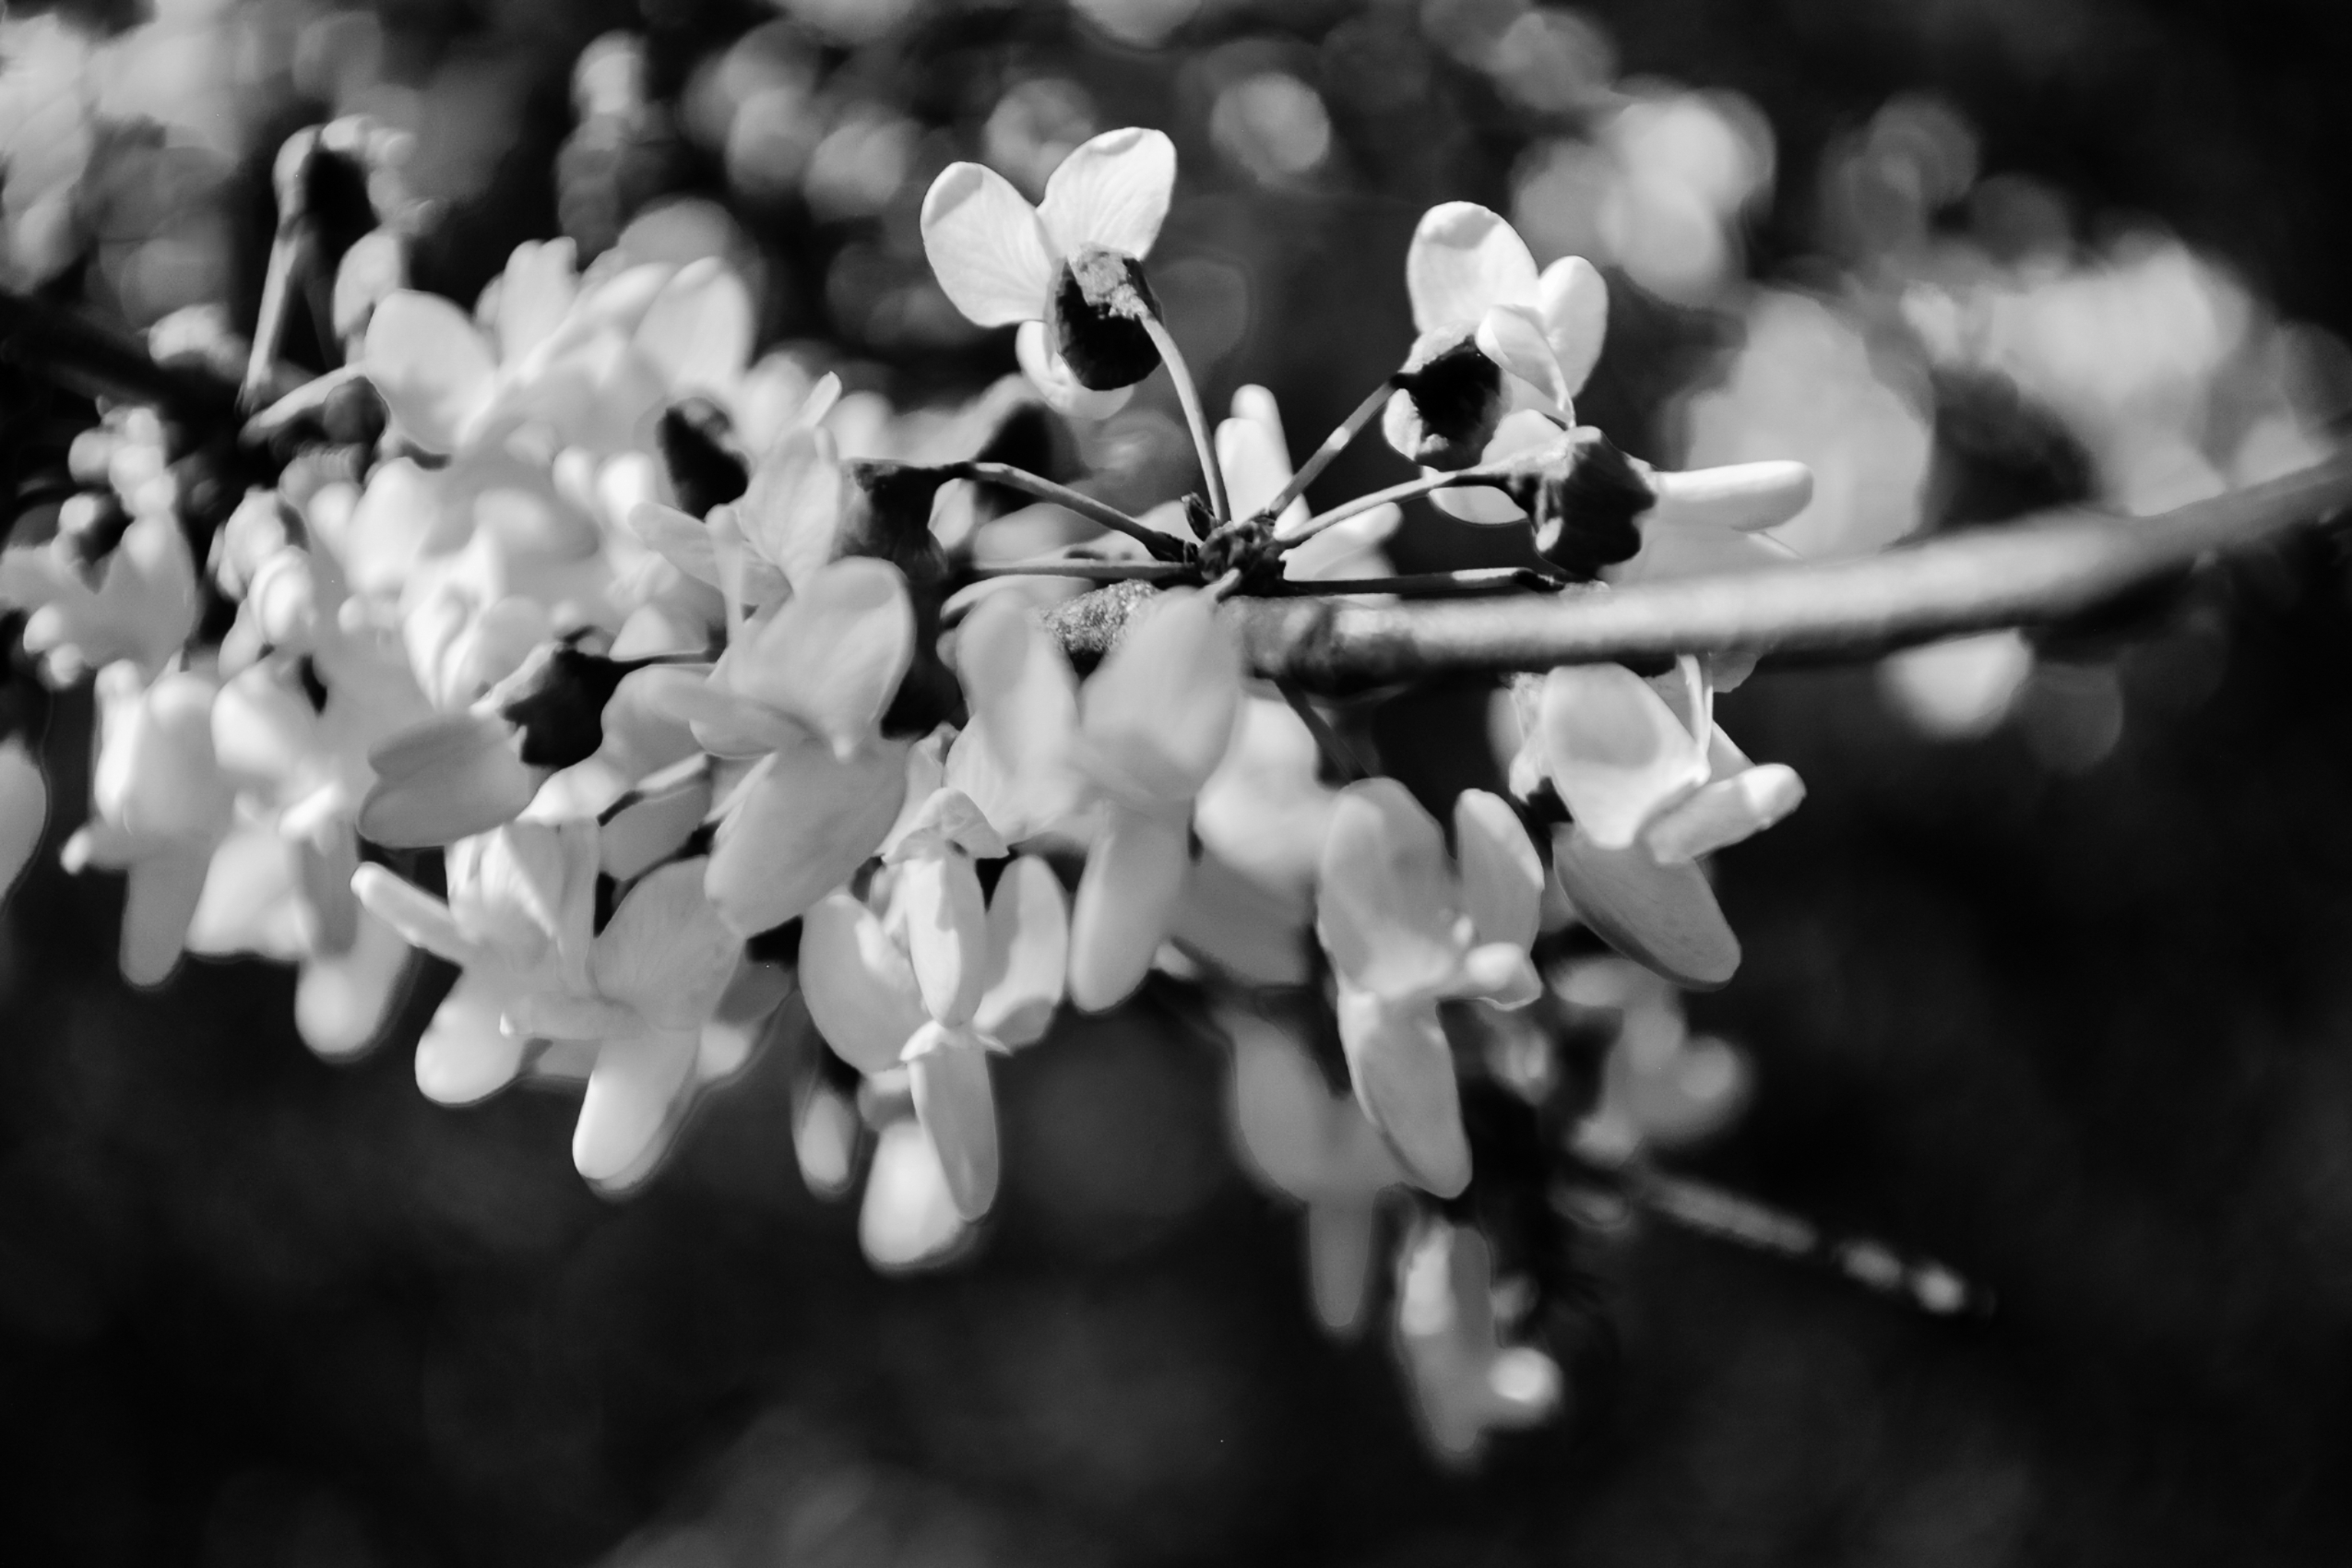 Spring Flowers Black and White example image 1